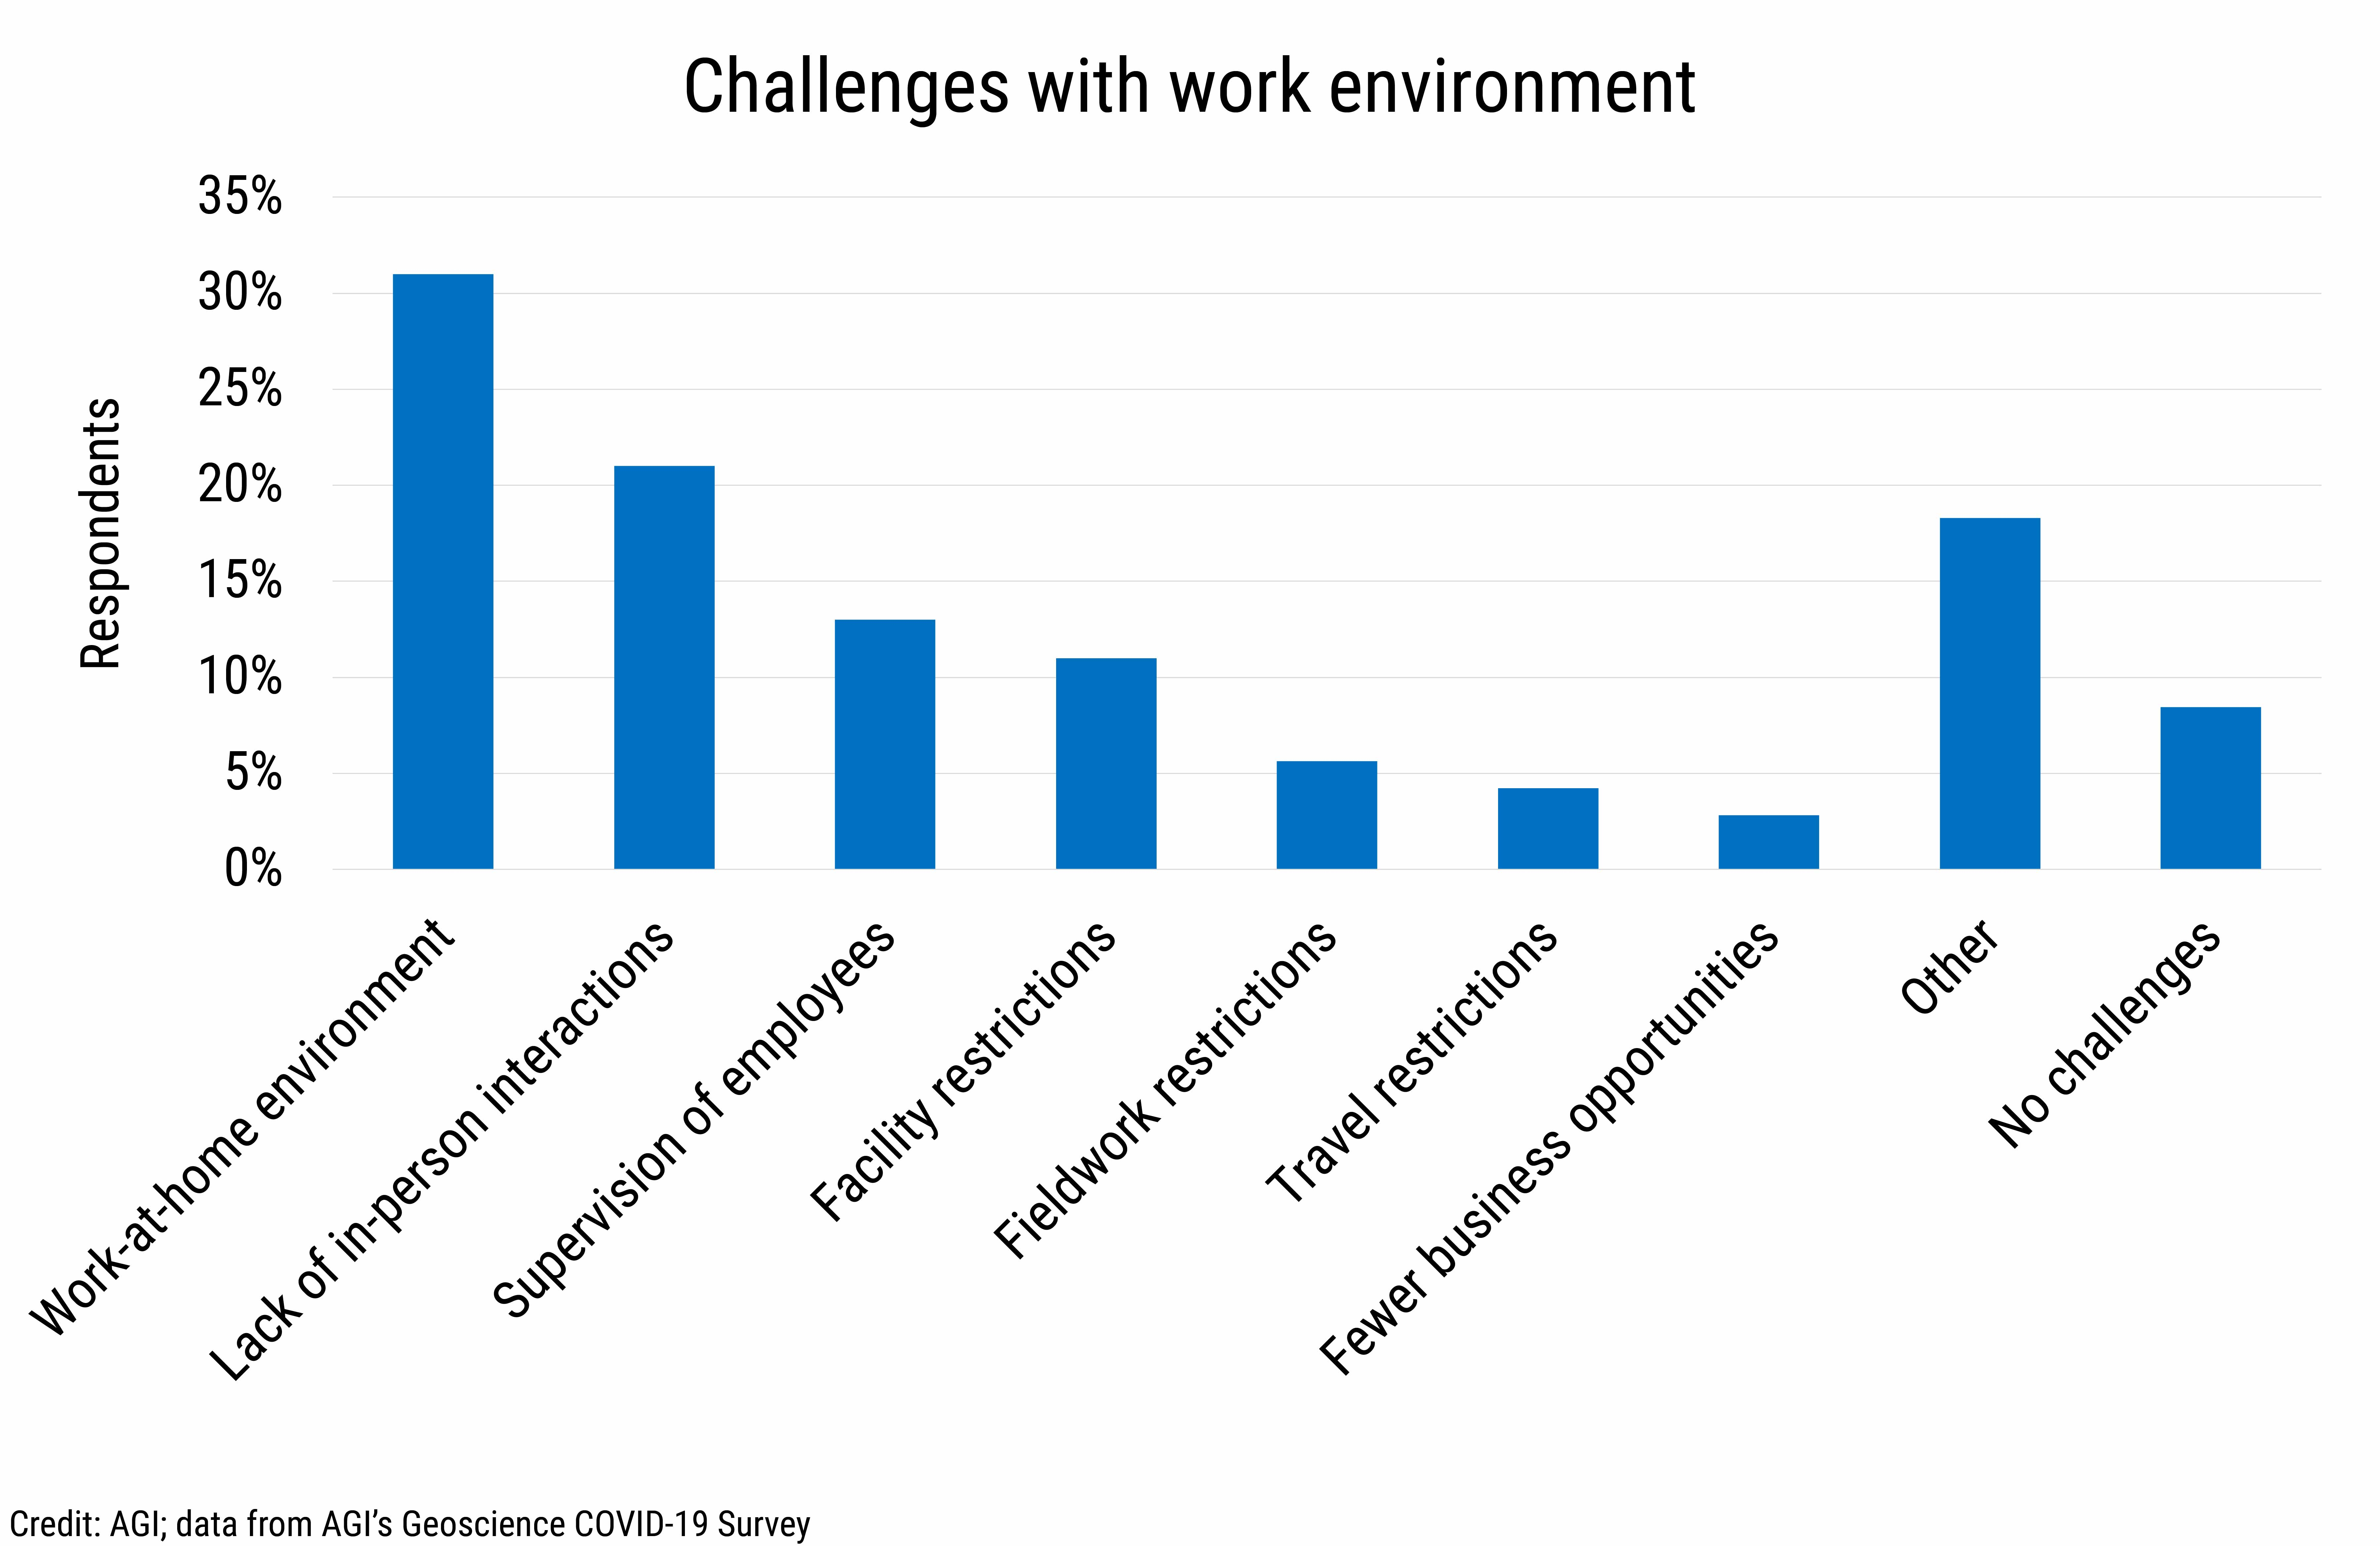 DB_2021-007 chart 06: Challenges with work environment (Credit: AGI; data from AGI's Geoscience COVID-19 Survey)